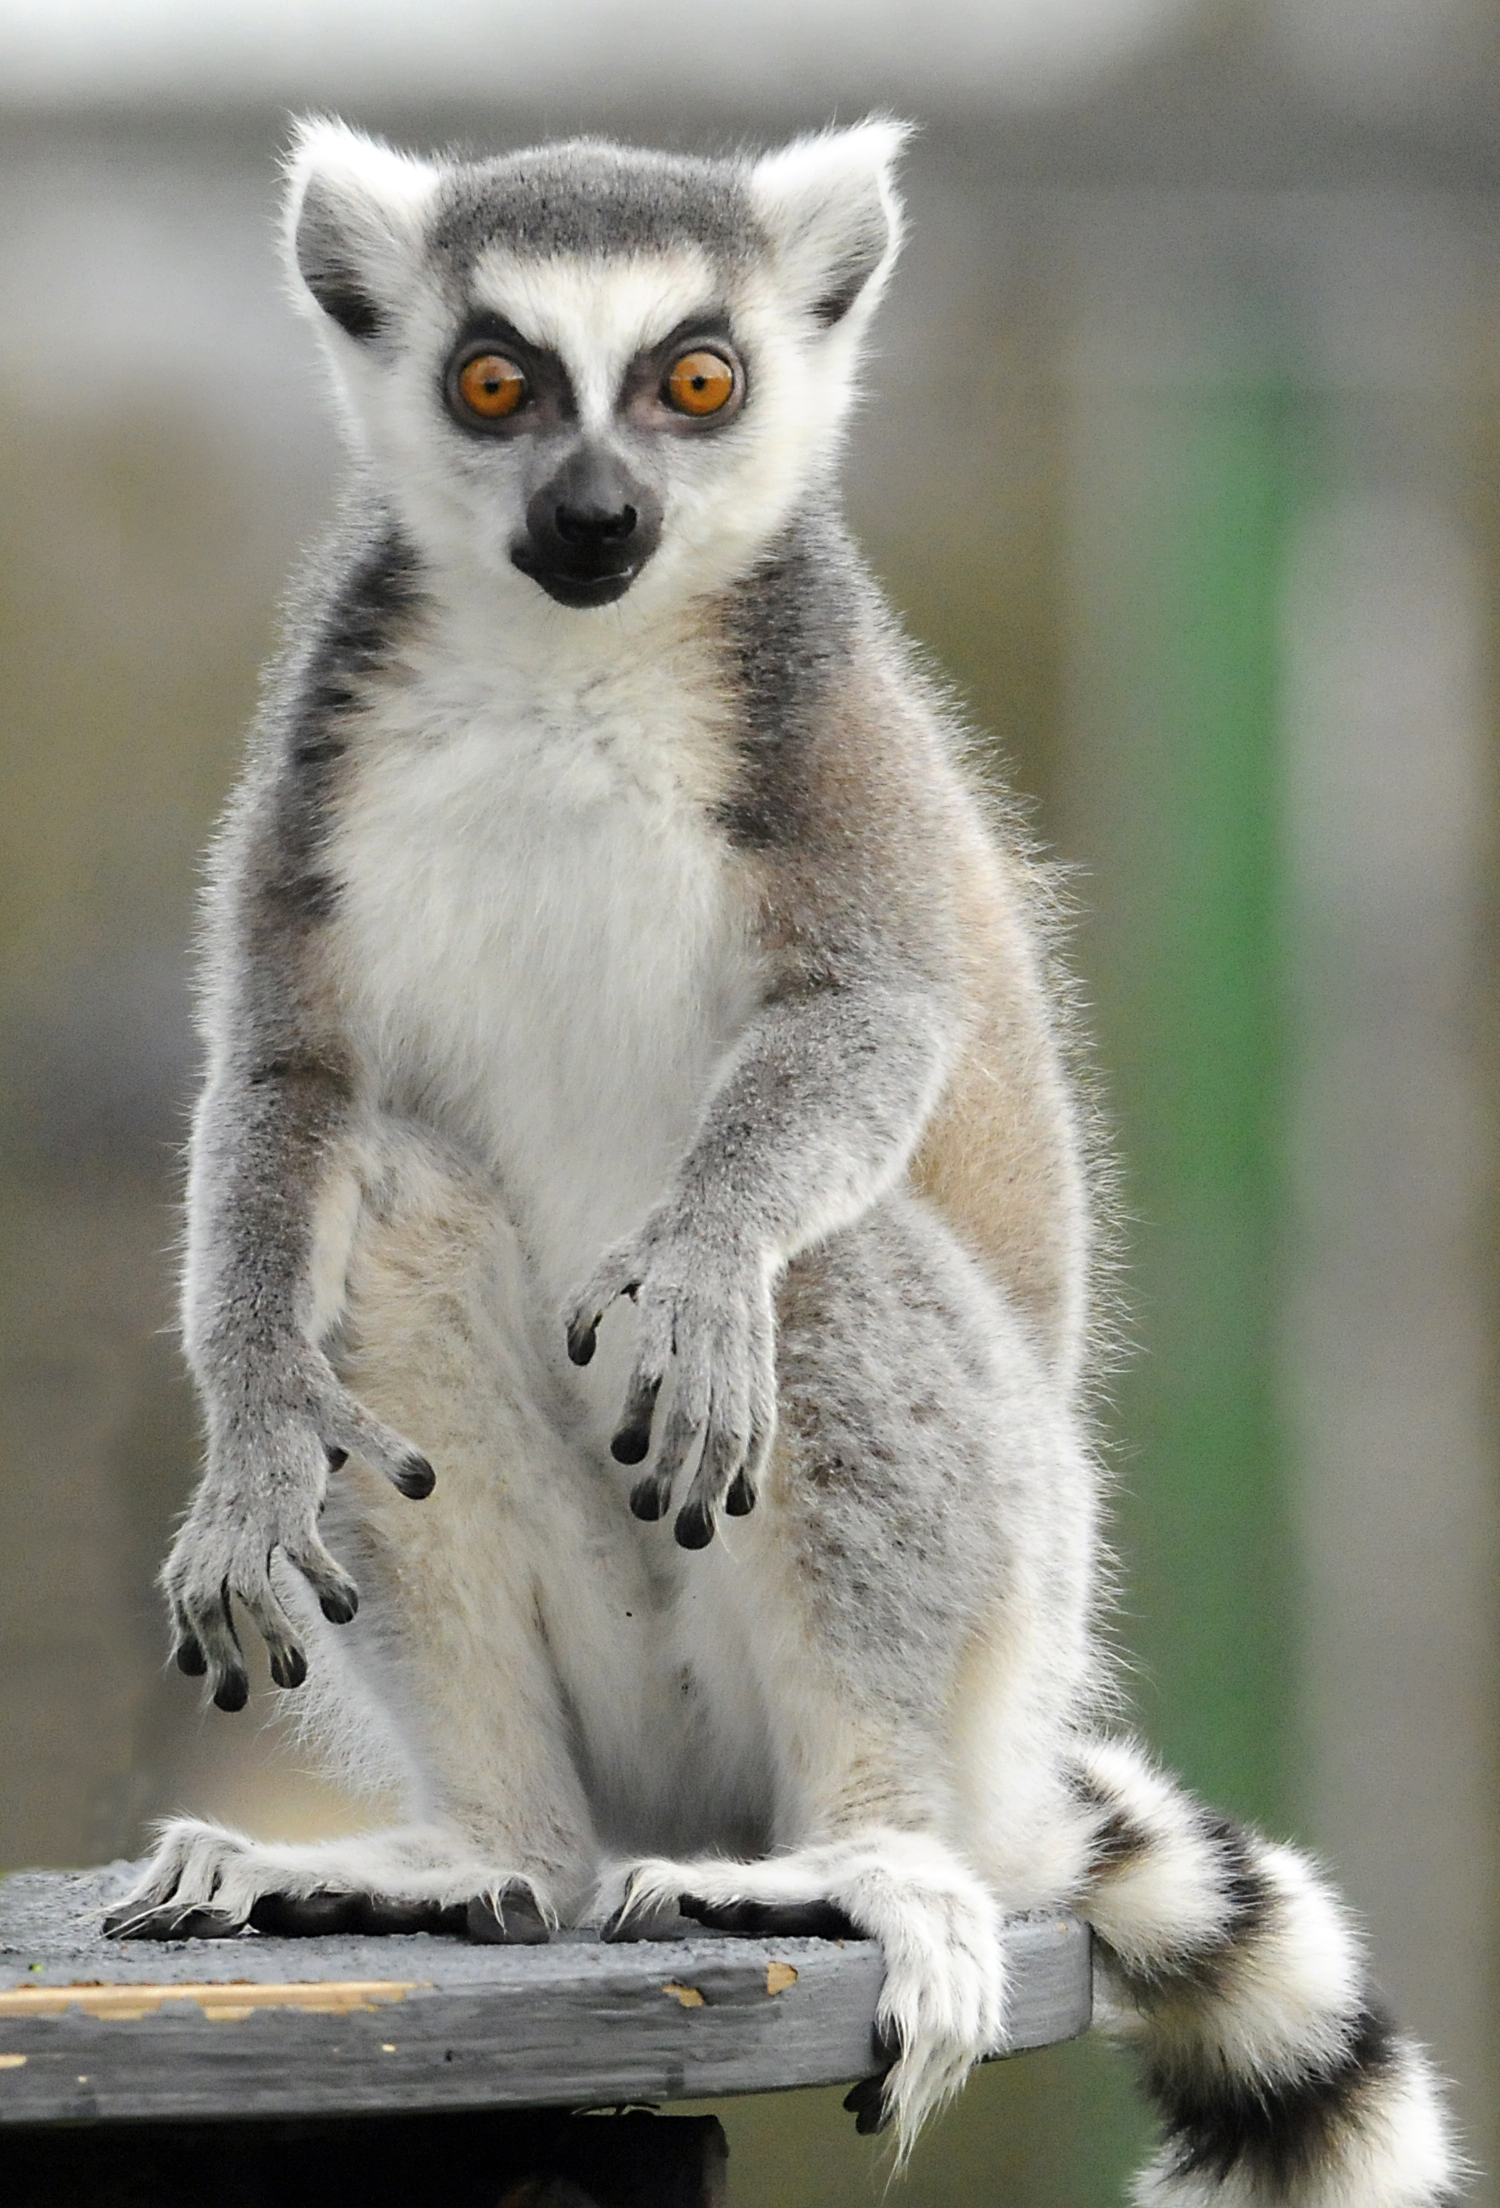 lemurs images whoa hd wallpaper and background photos